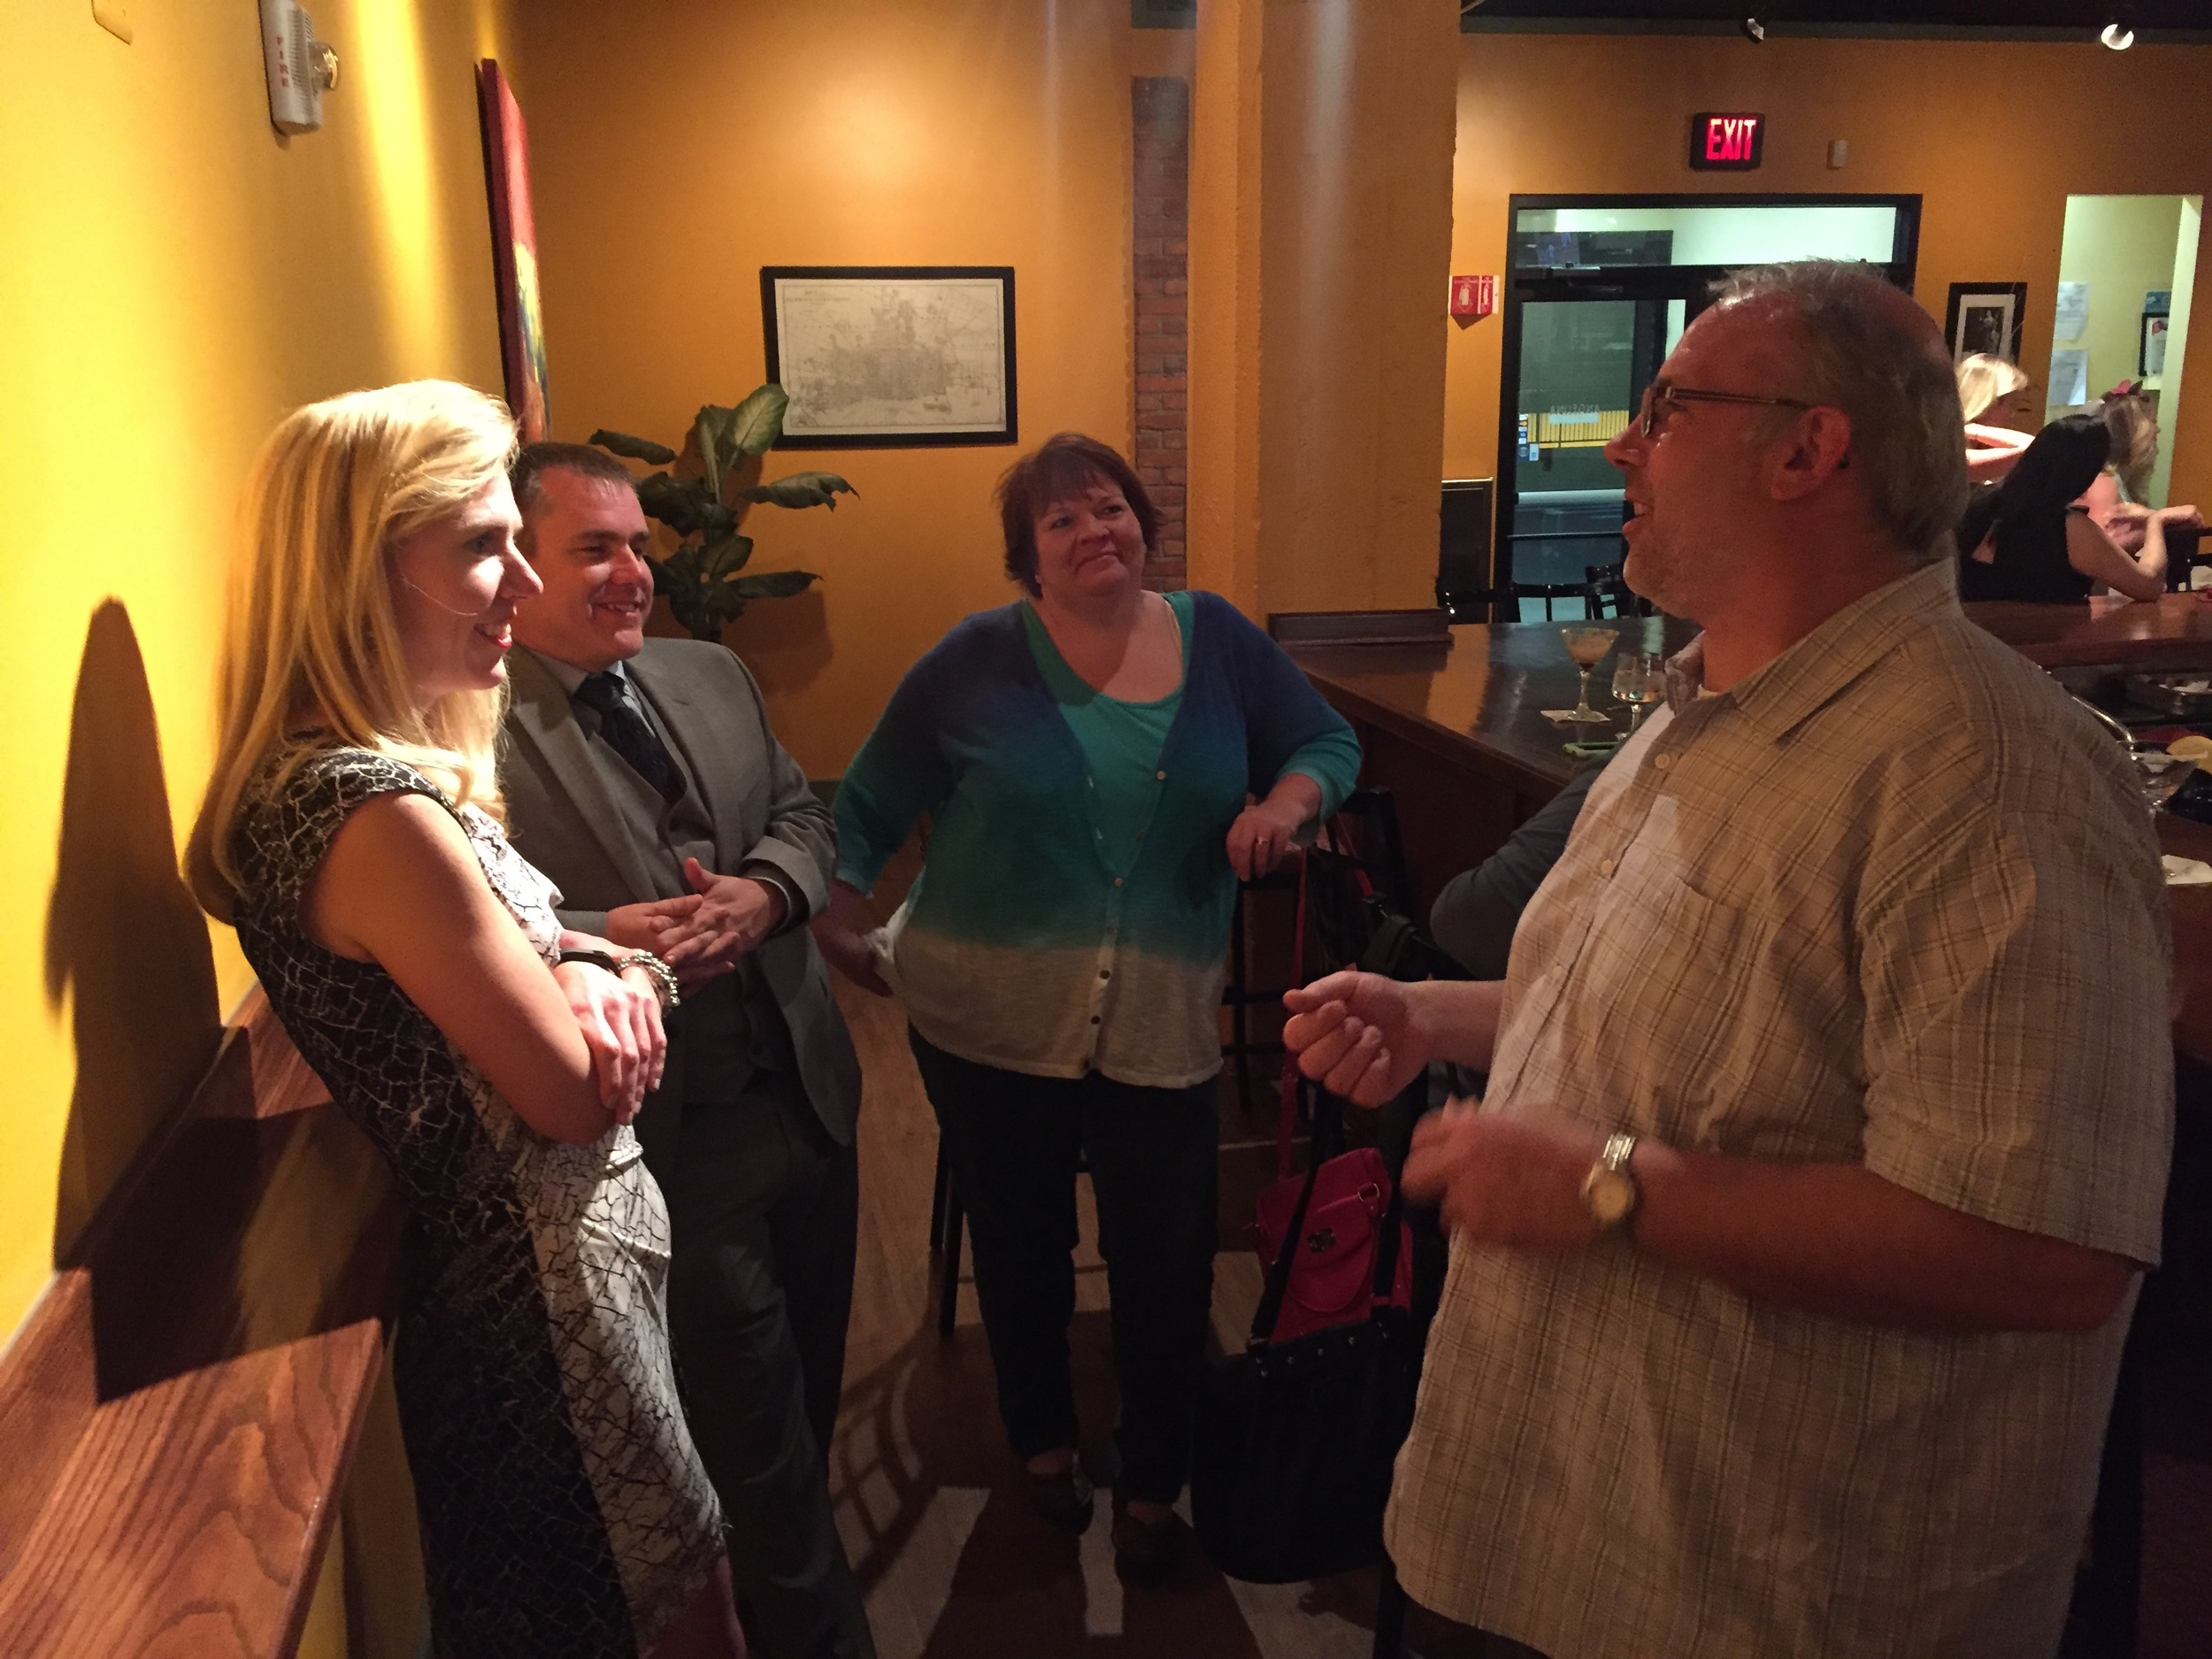 Mike, co-owner of Angelina Italian Bistro, talks with a few of our guests. Turns out they were old friends!